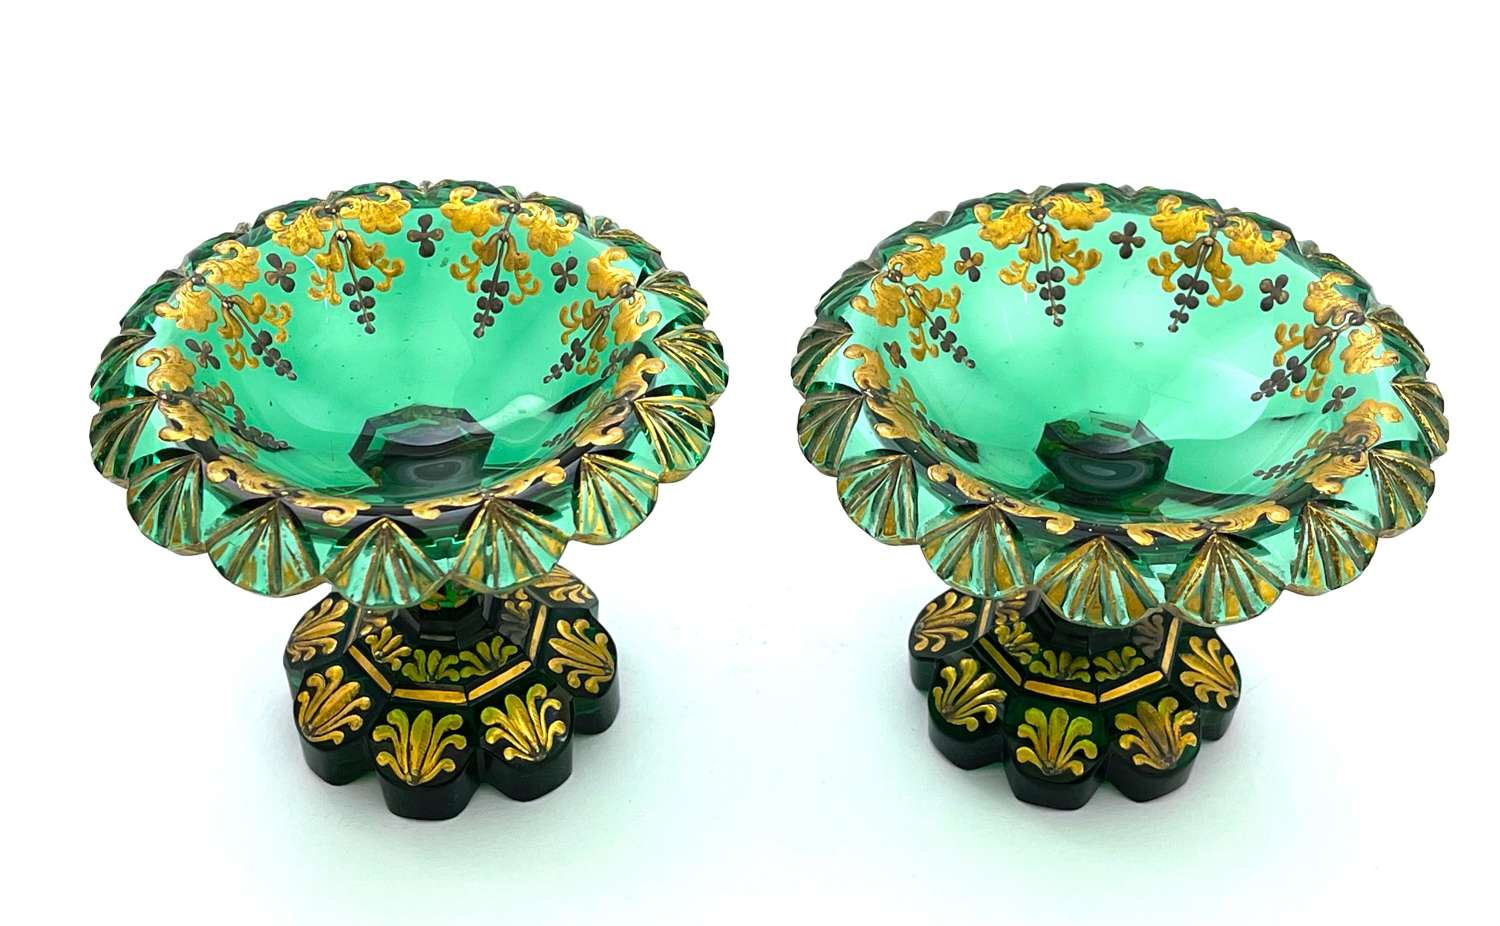 Pair of Antique Bohemian Emerald Green Enamelled Dishes